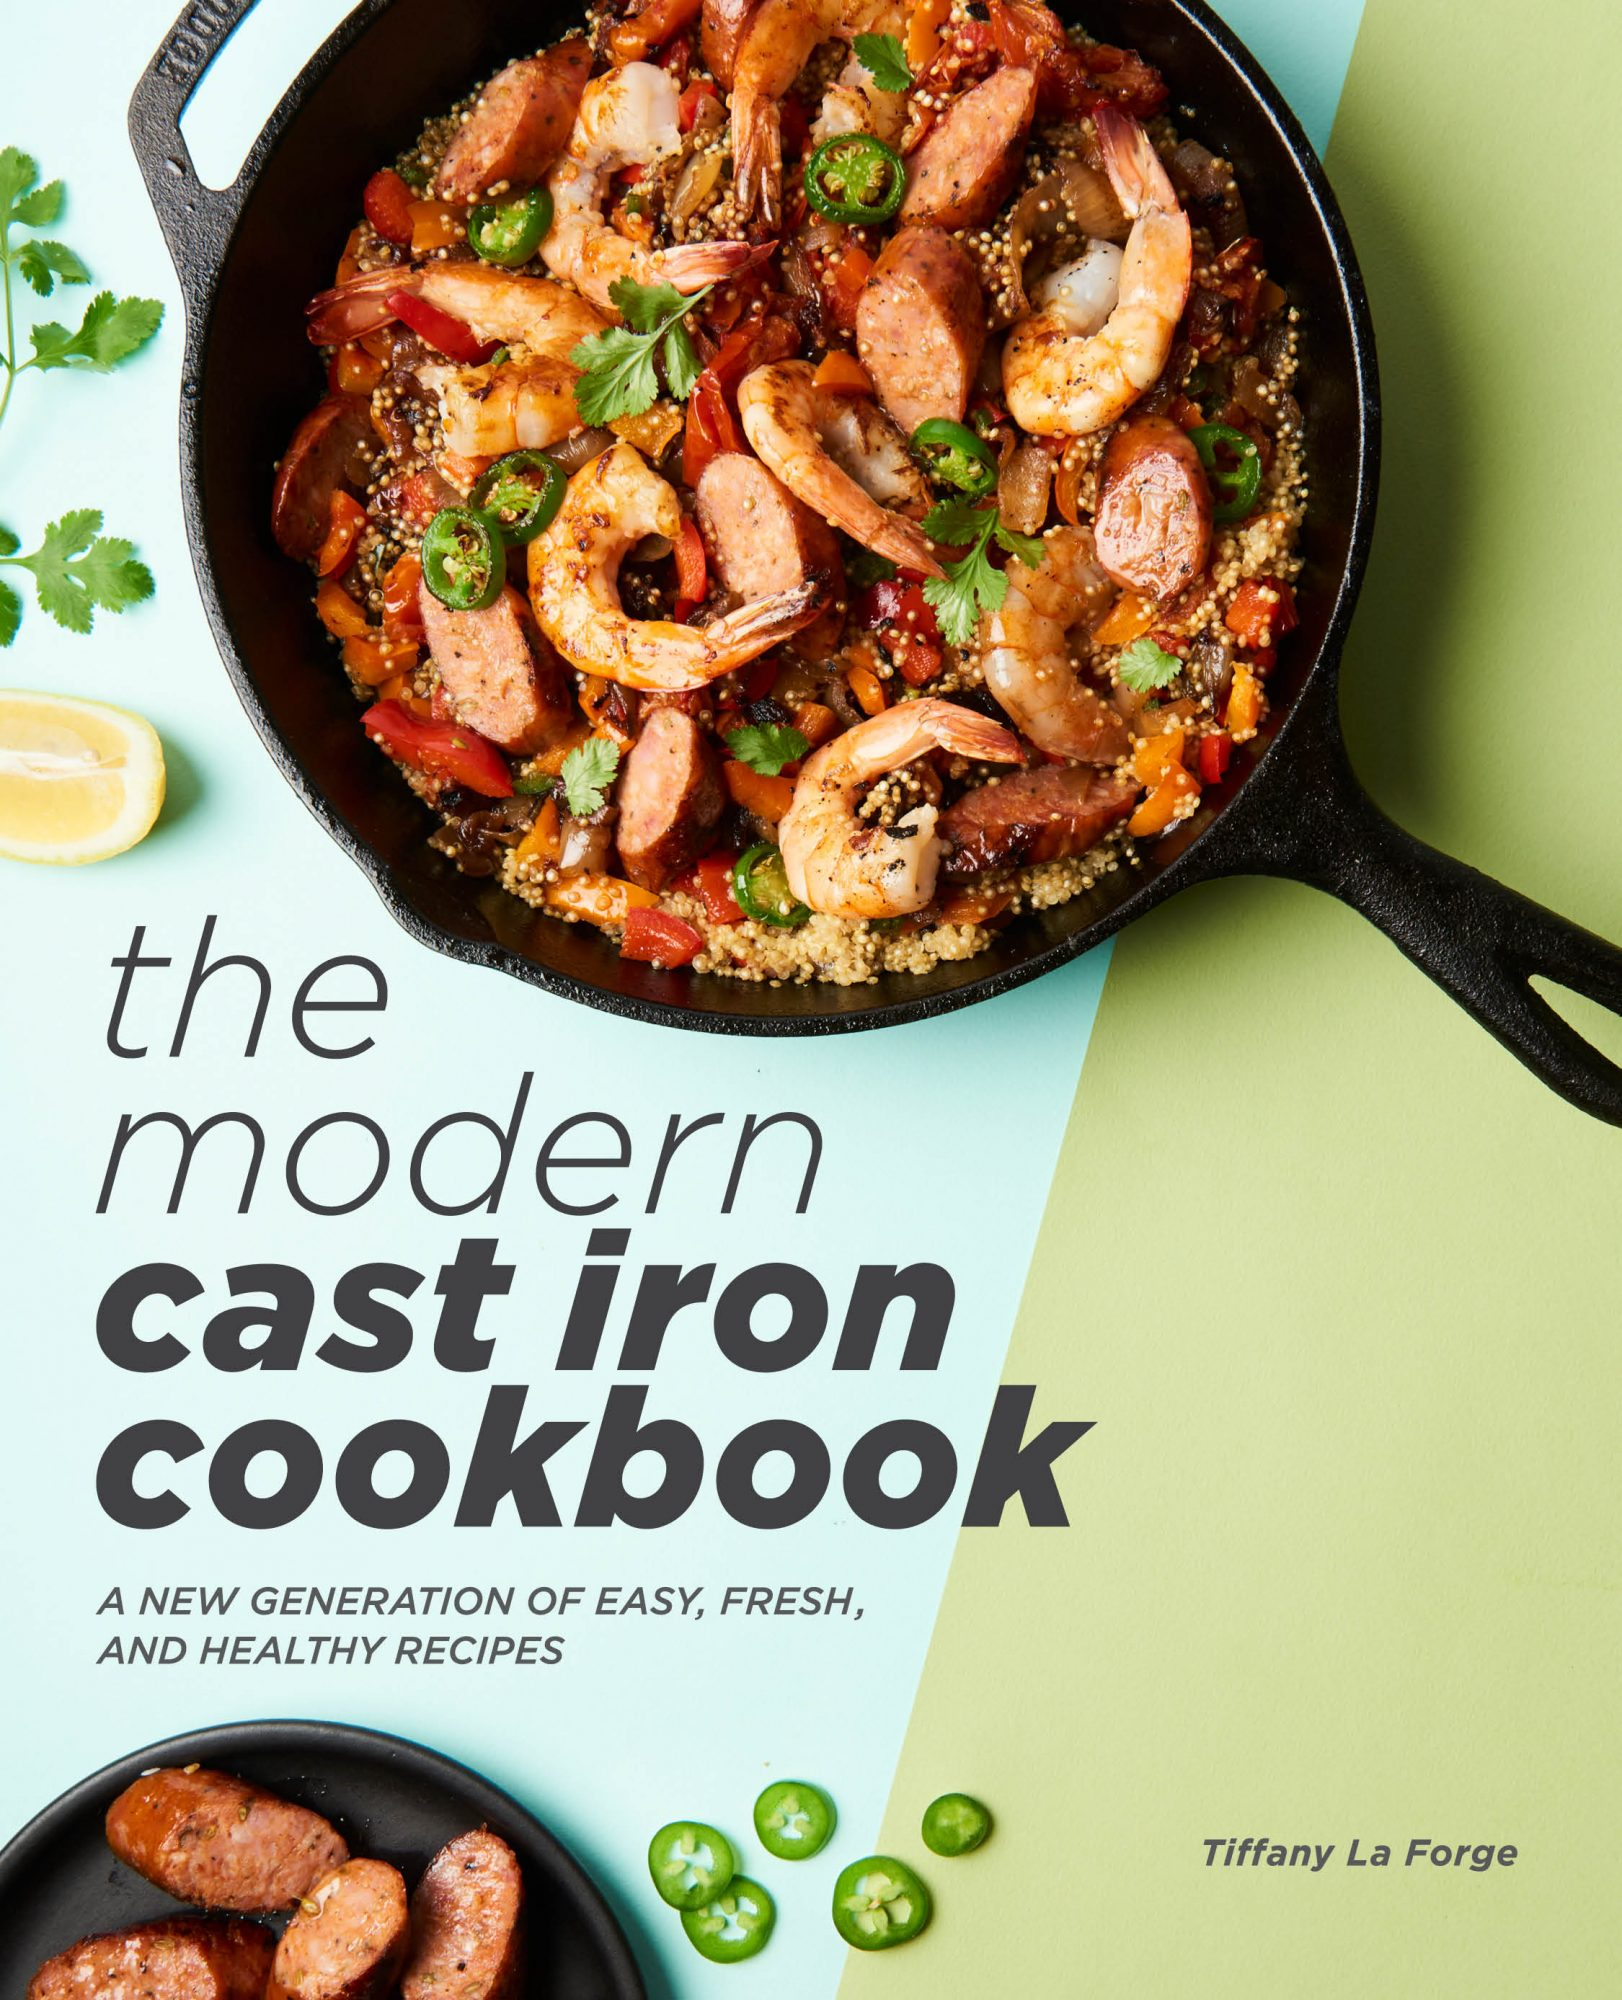 The Modern Cast Iron Cookbook is now available